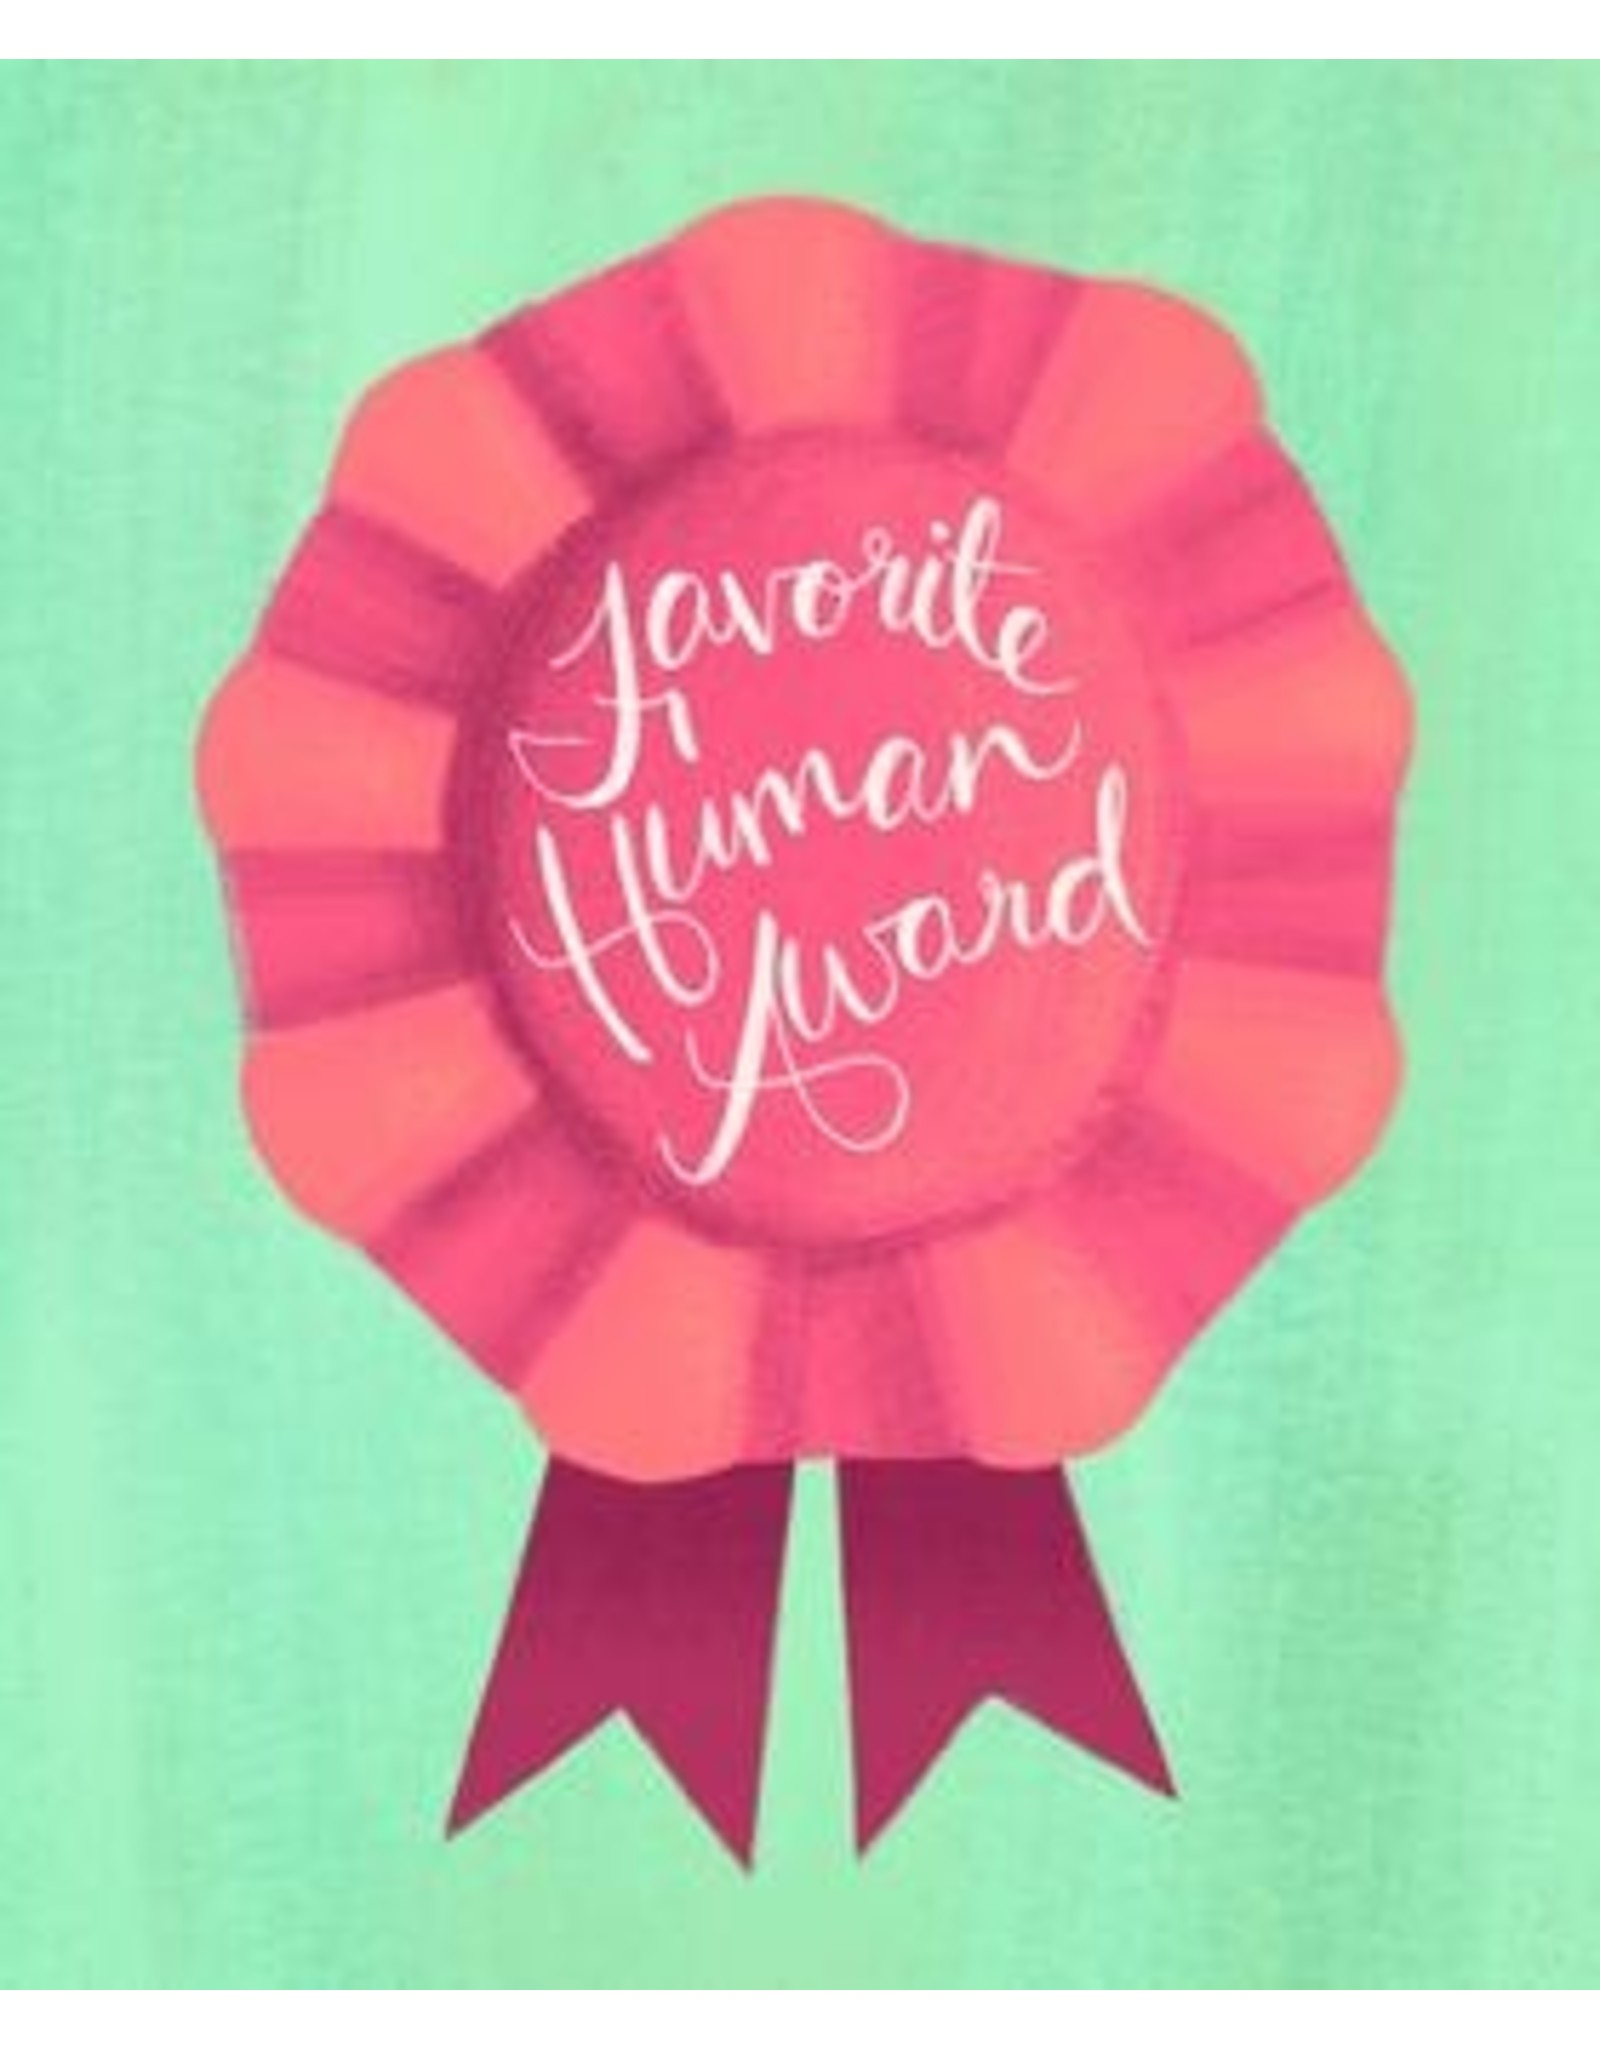 Meaghan Smith - Favorite Human Award Card